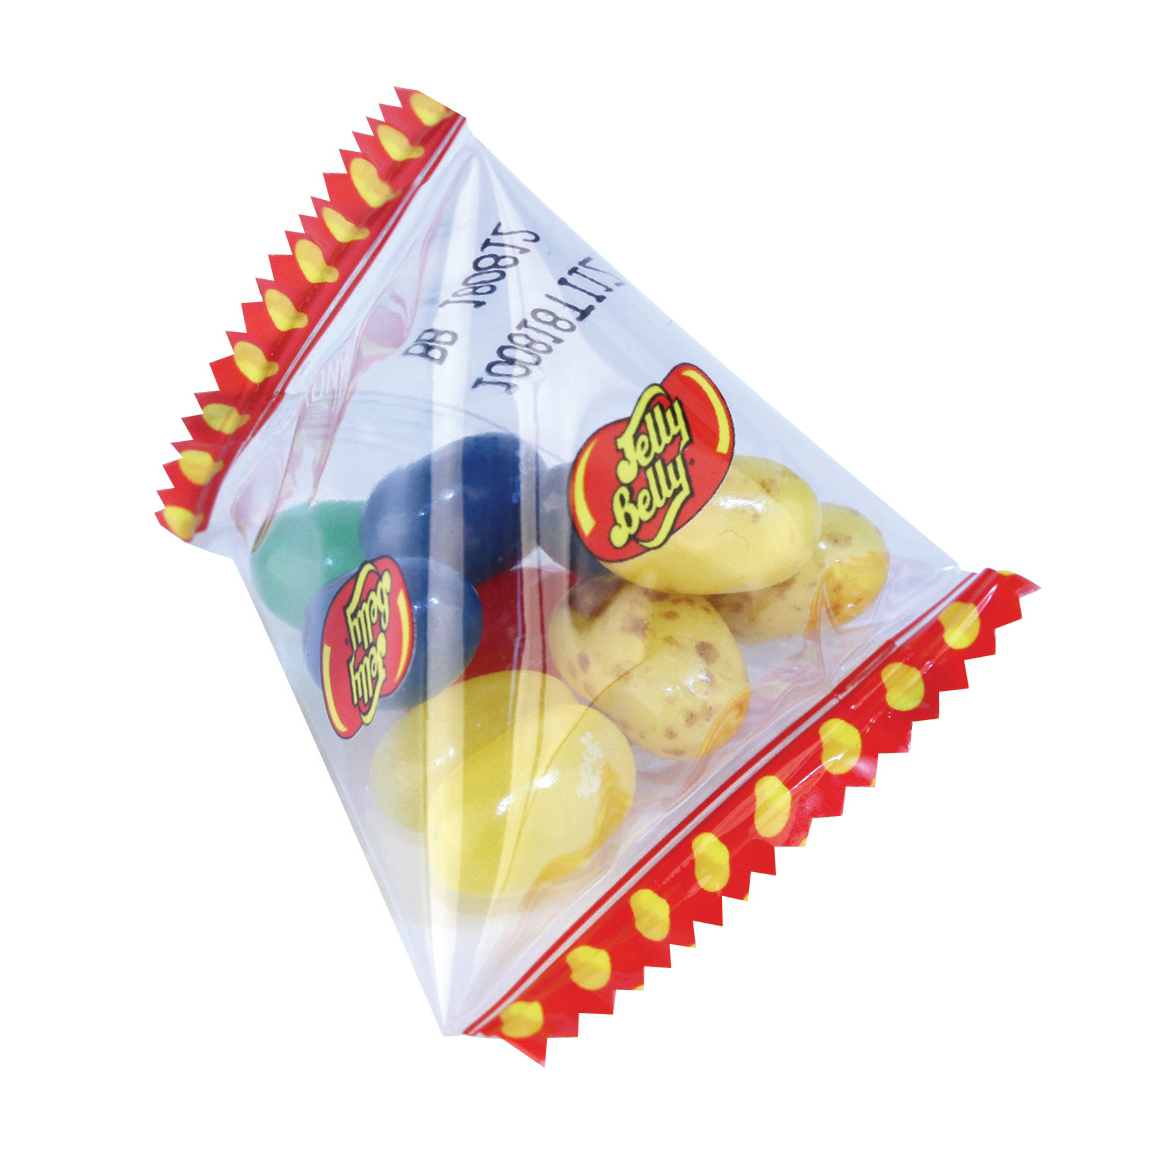 Sweets / Chocolate Jelly Belly Jelly Bean Pyramids Assorted Flavours 10g [Pack 300]